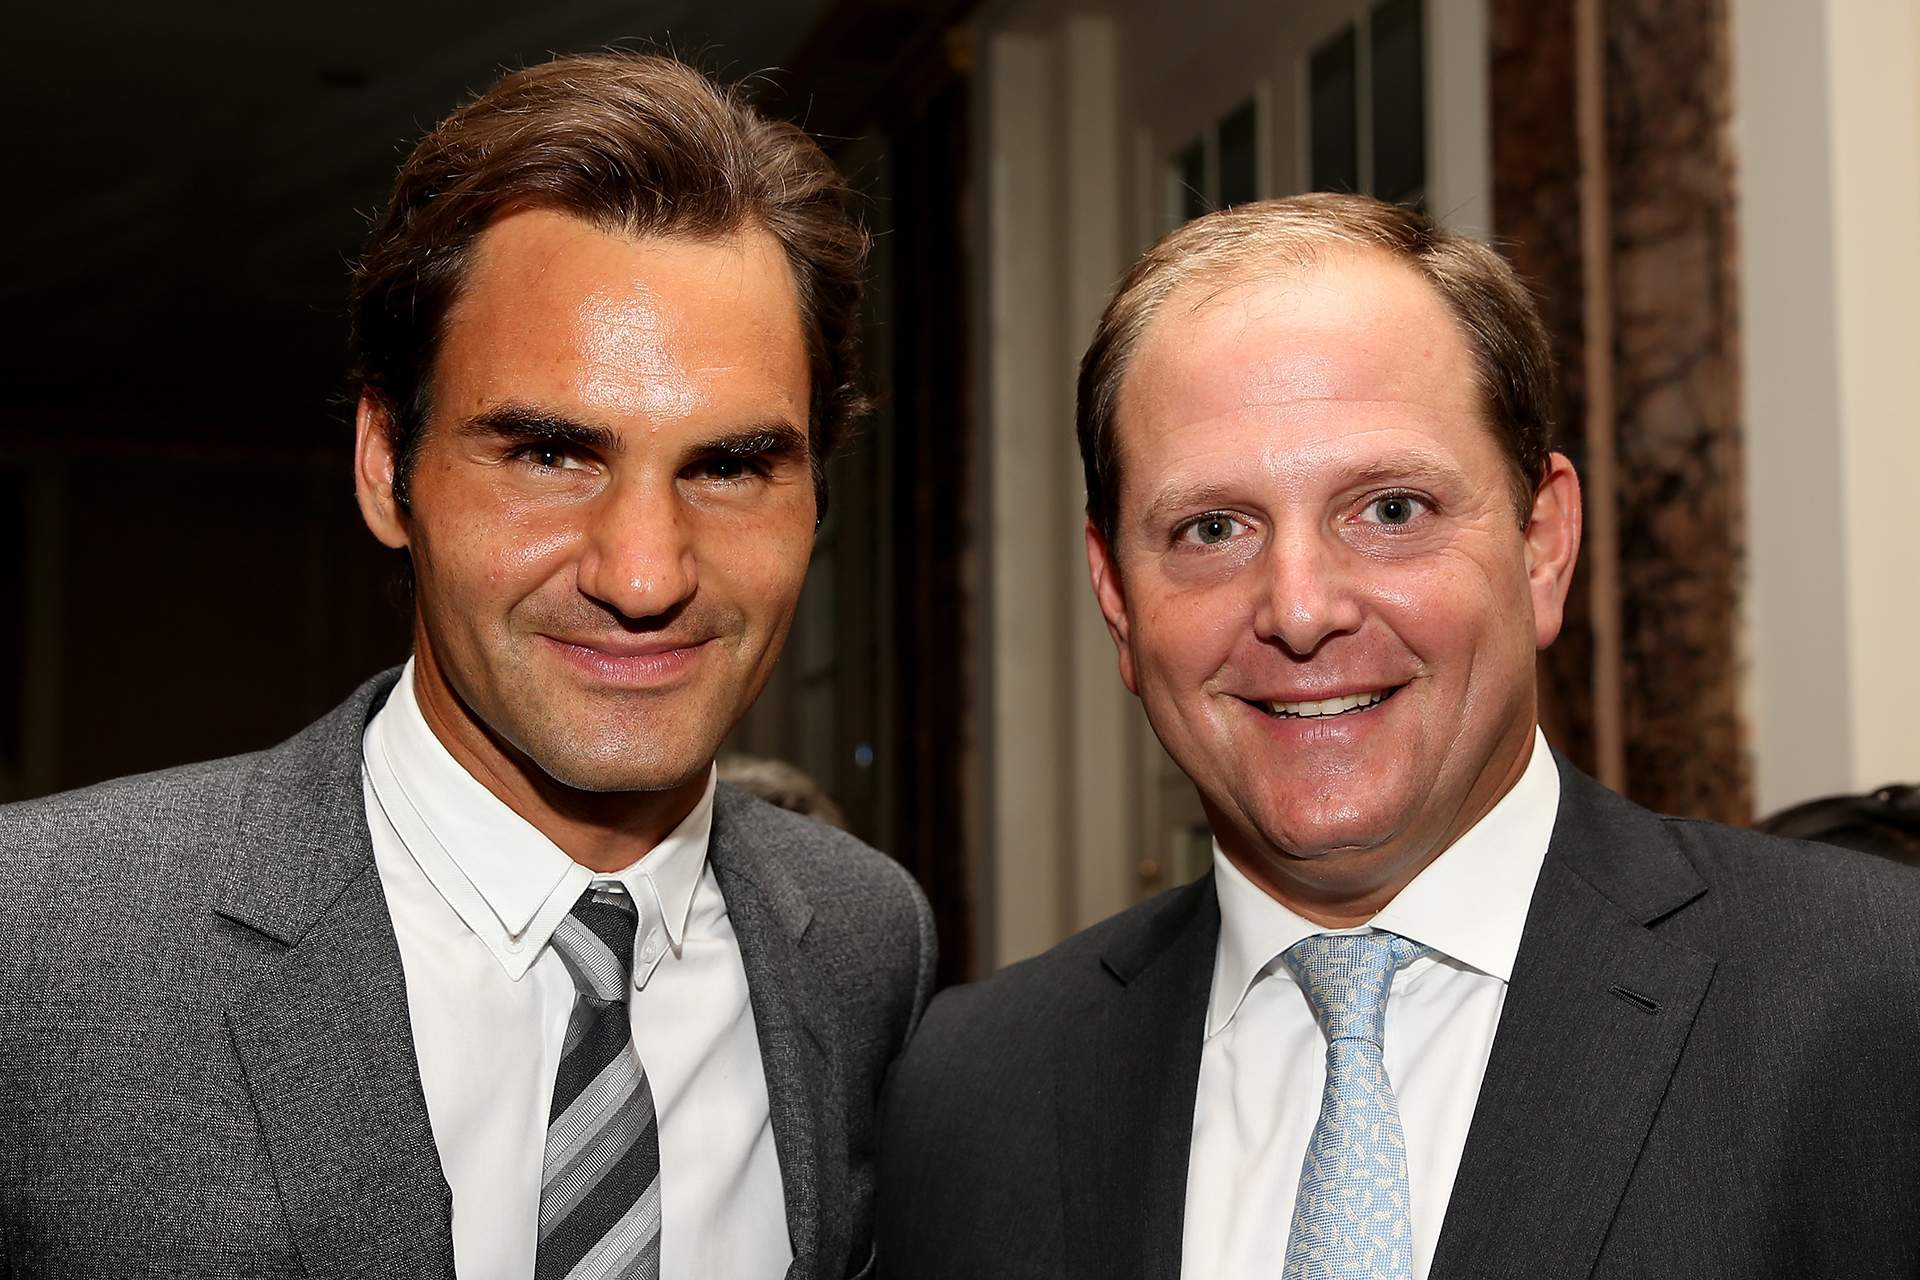 Roger Federer and Tony Godsick